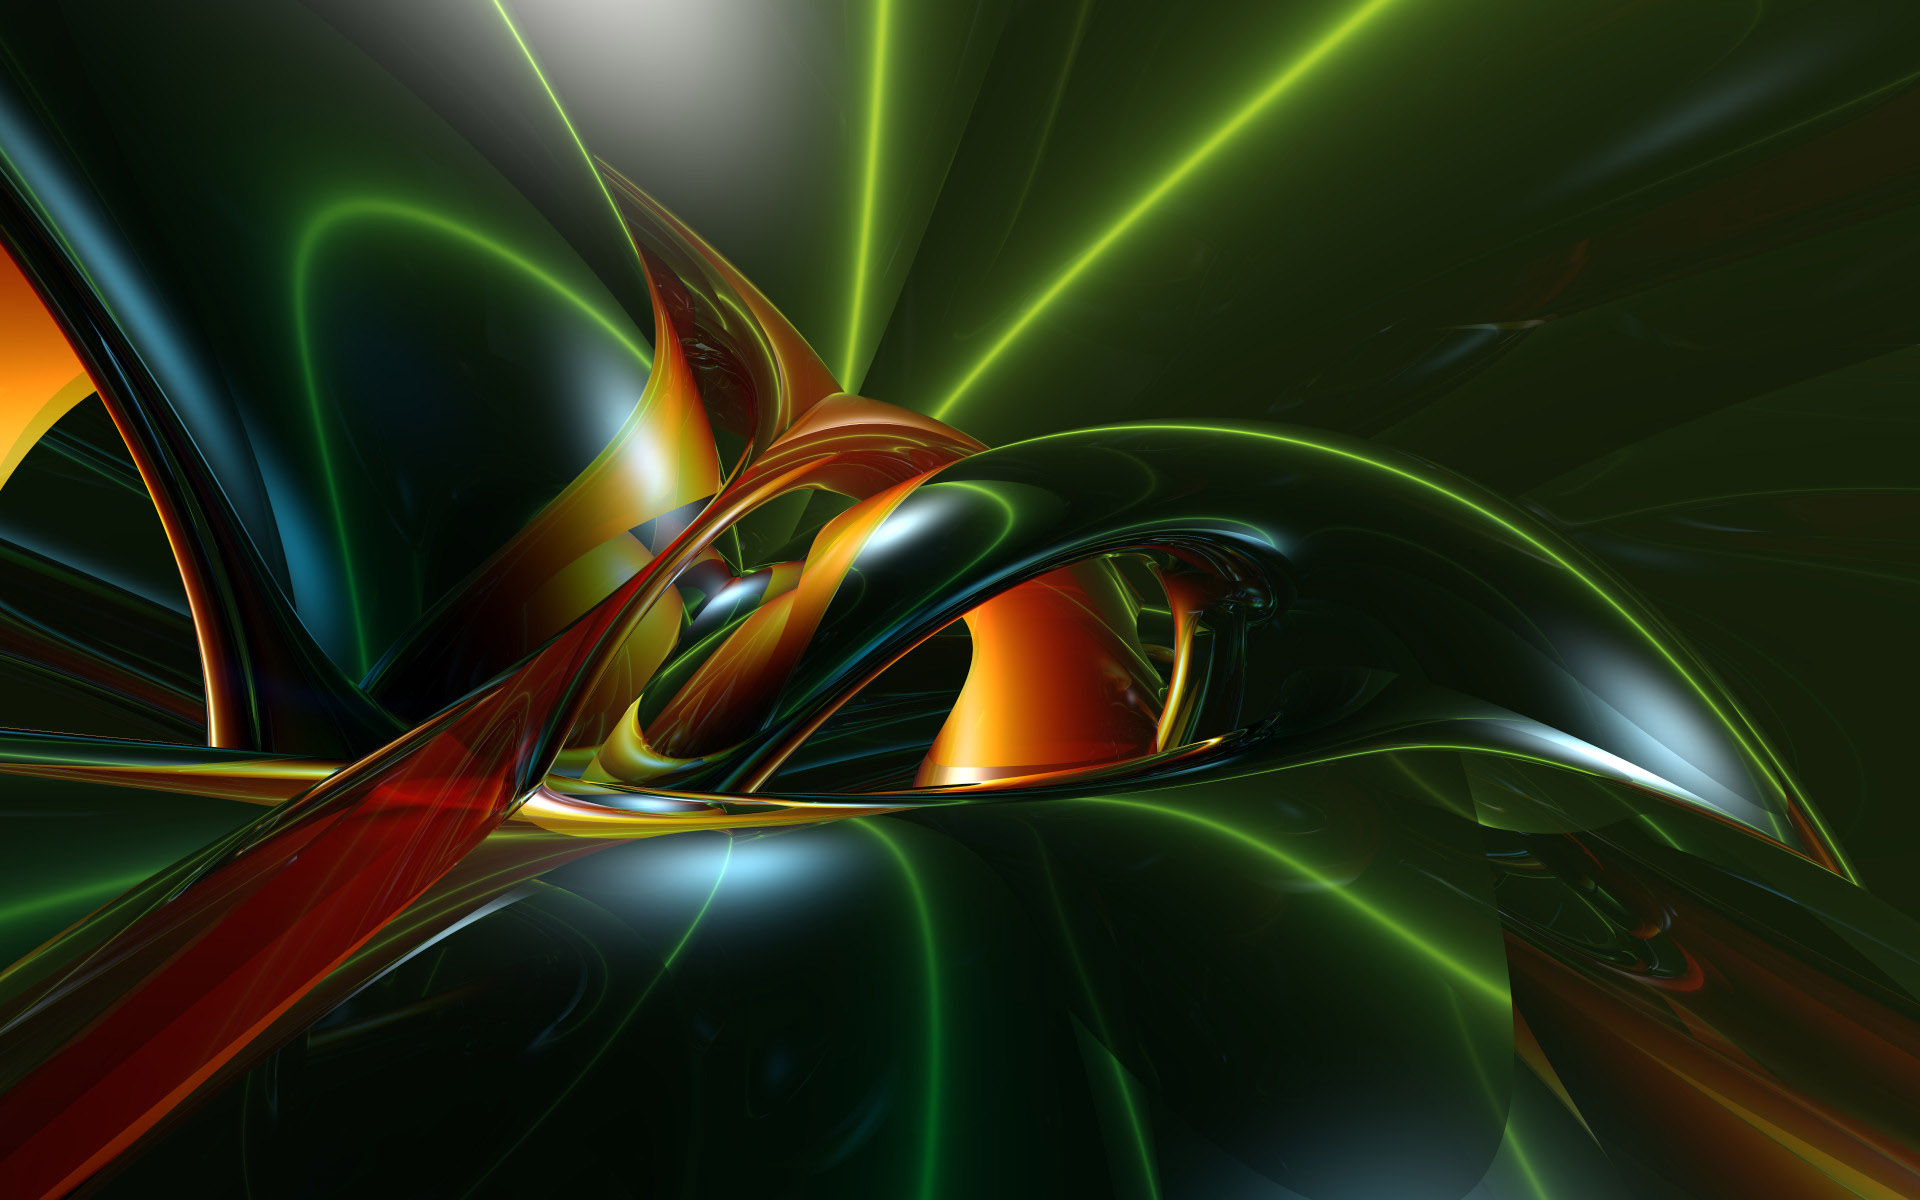 D Abstract Art X Hd Tk P O Of Phombo 322167 Wallpaper wallpaper